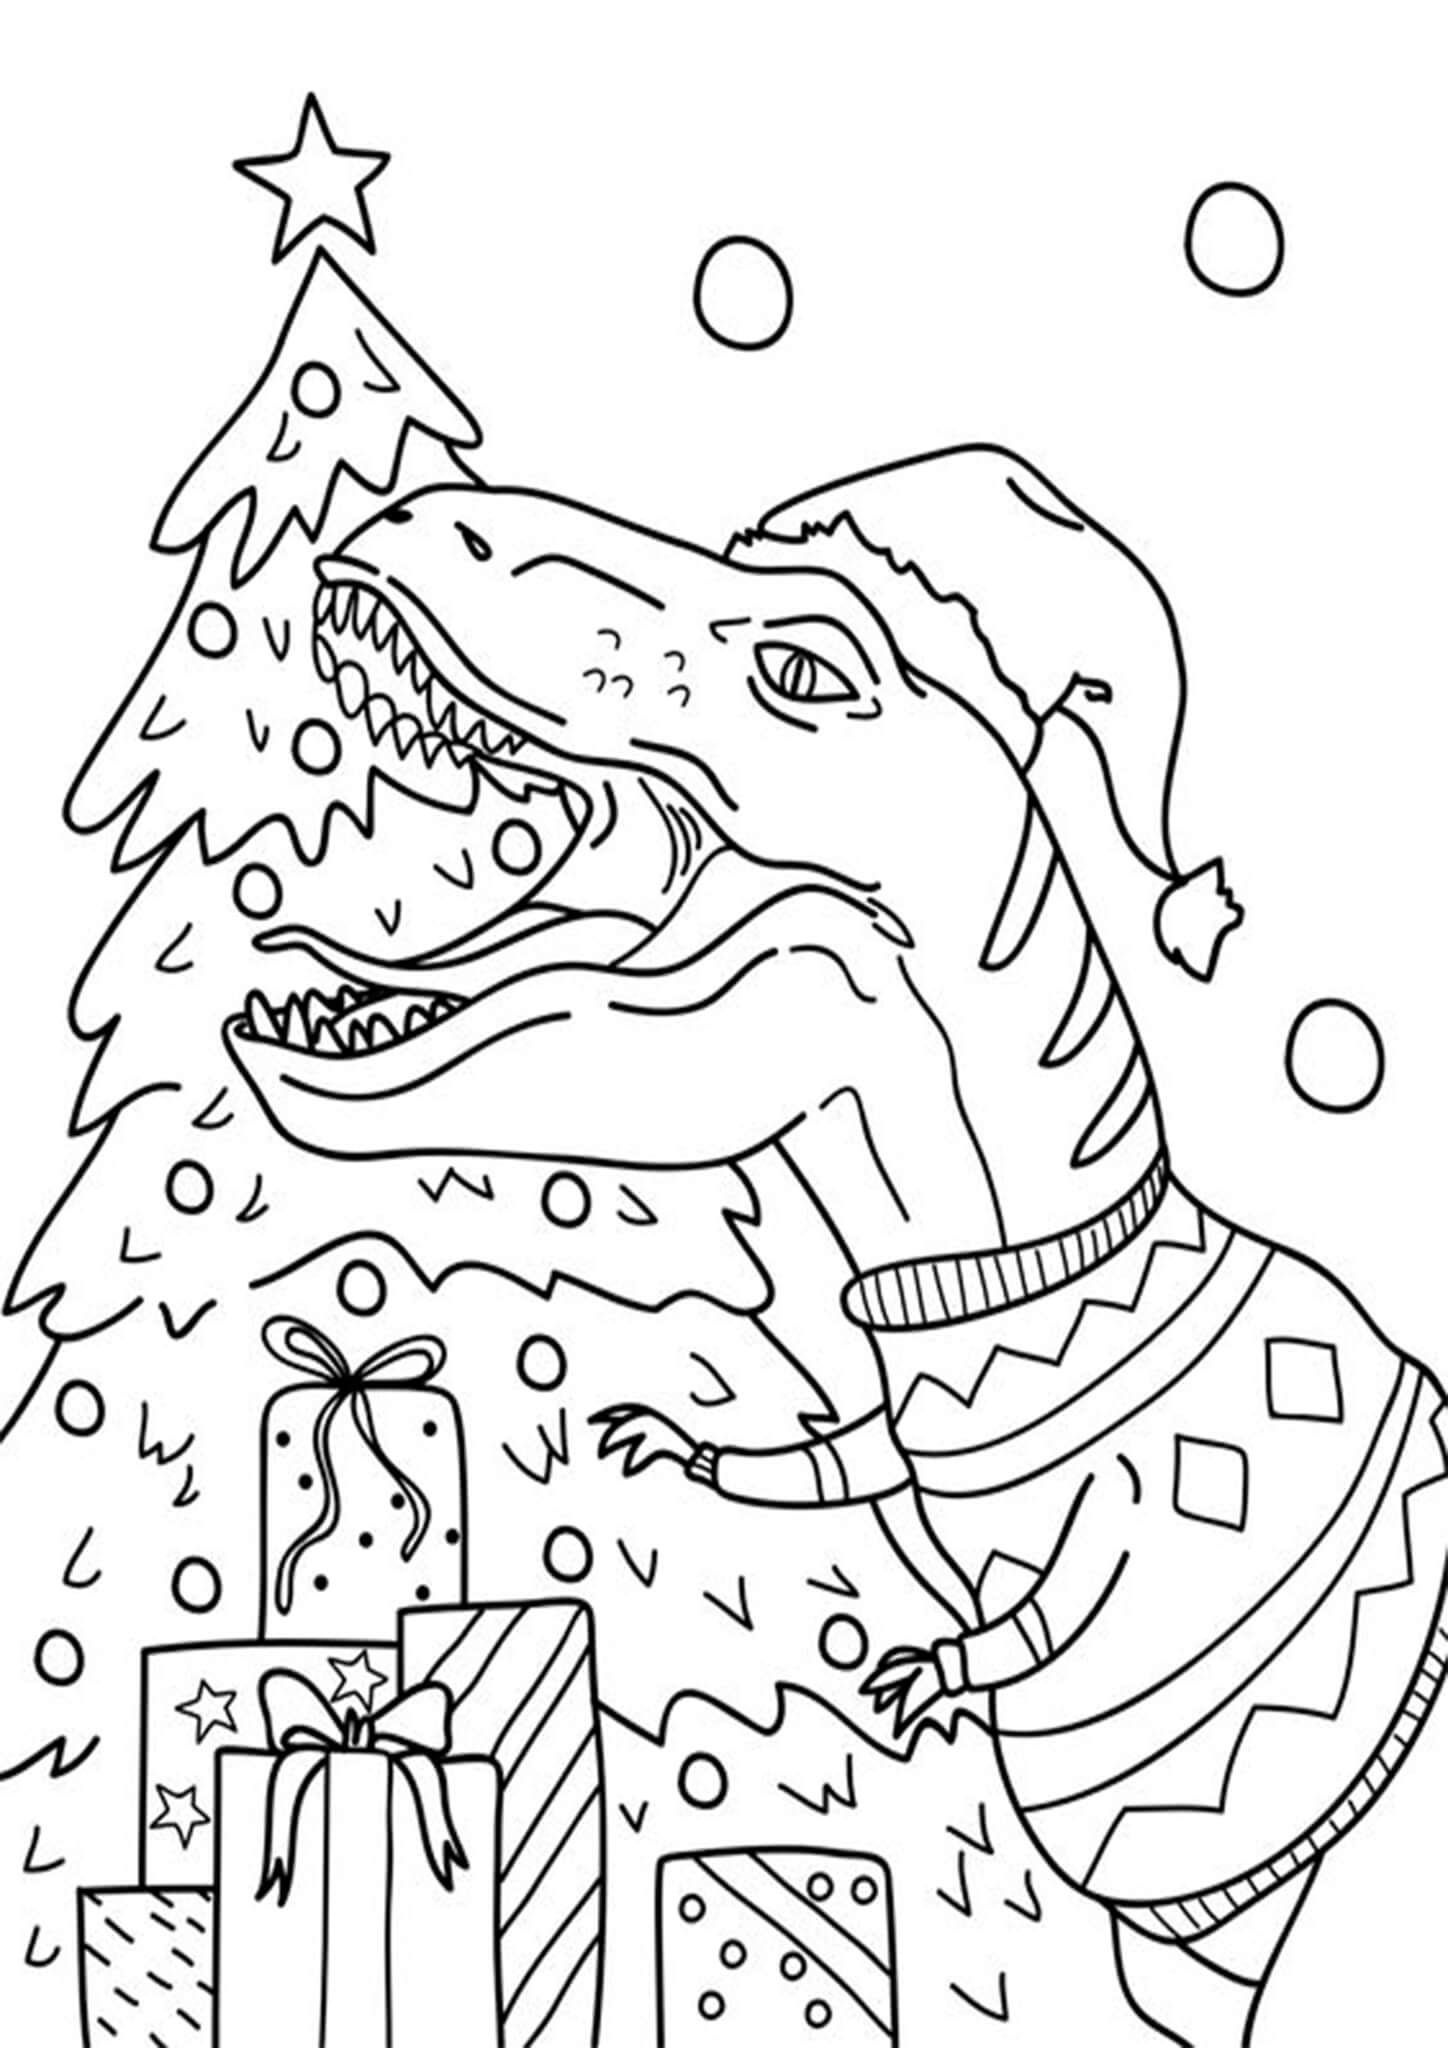 Free Easy To Print Christmas Tree Coloring Pages Christmas Coloring Printables Printable Christmas Coloring Pages Dinosaur Coloring Pages